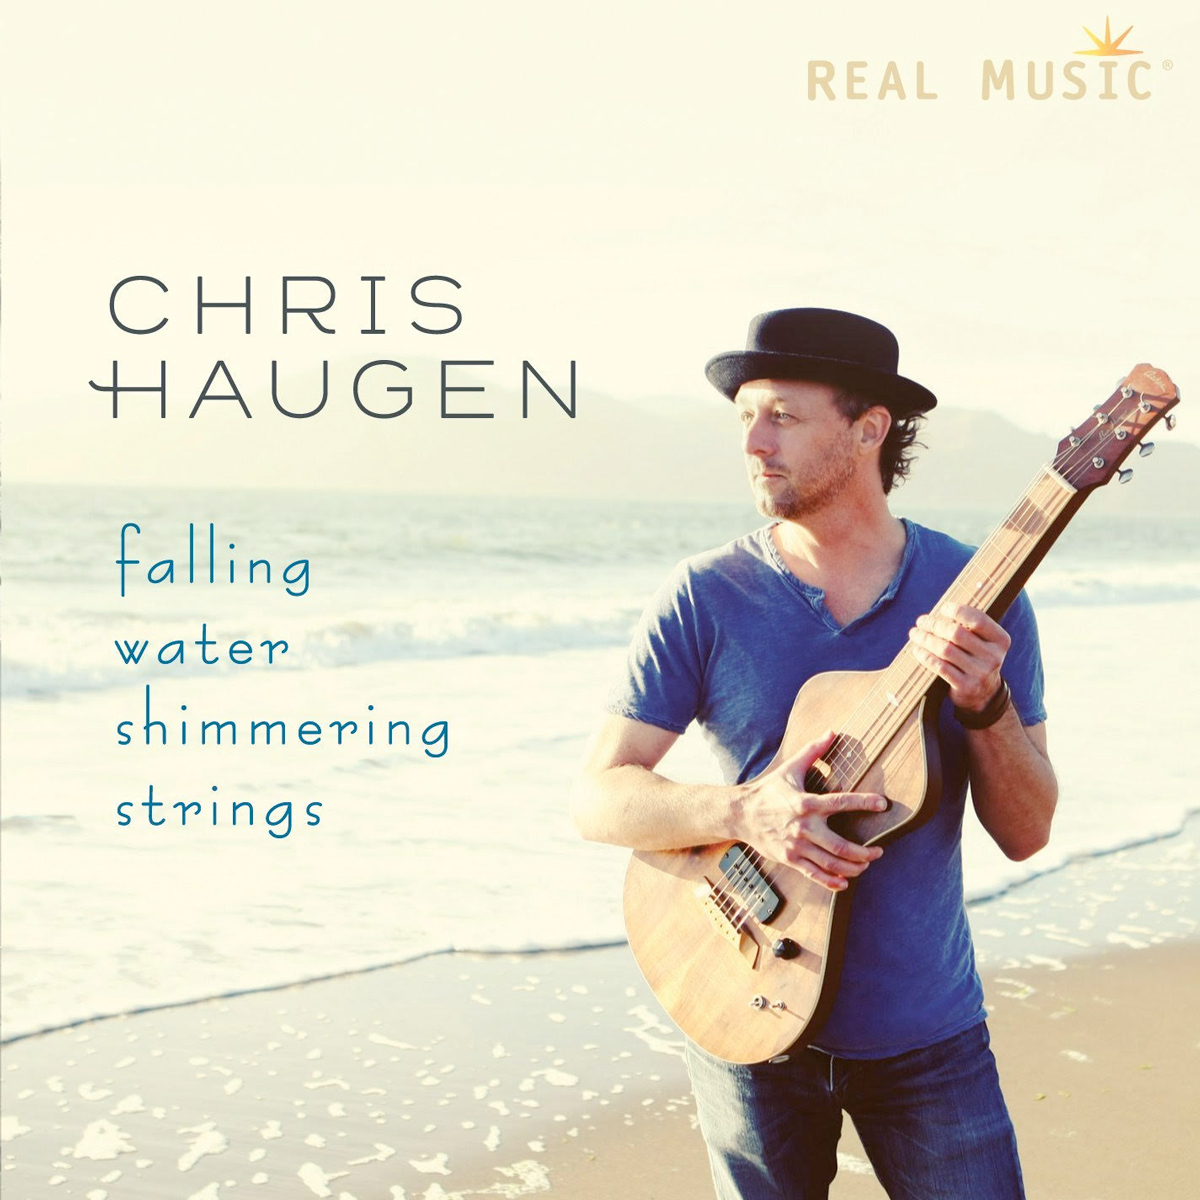 Chris Haugen